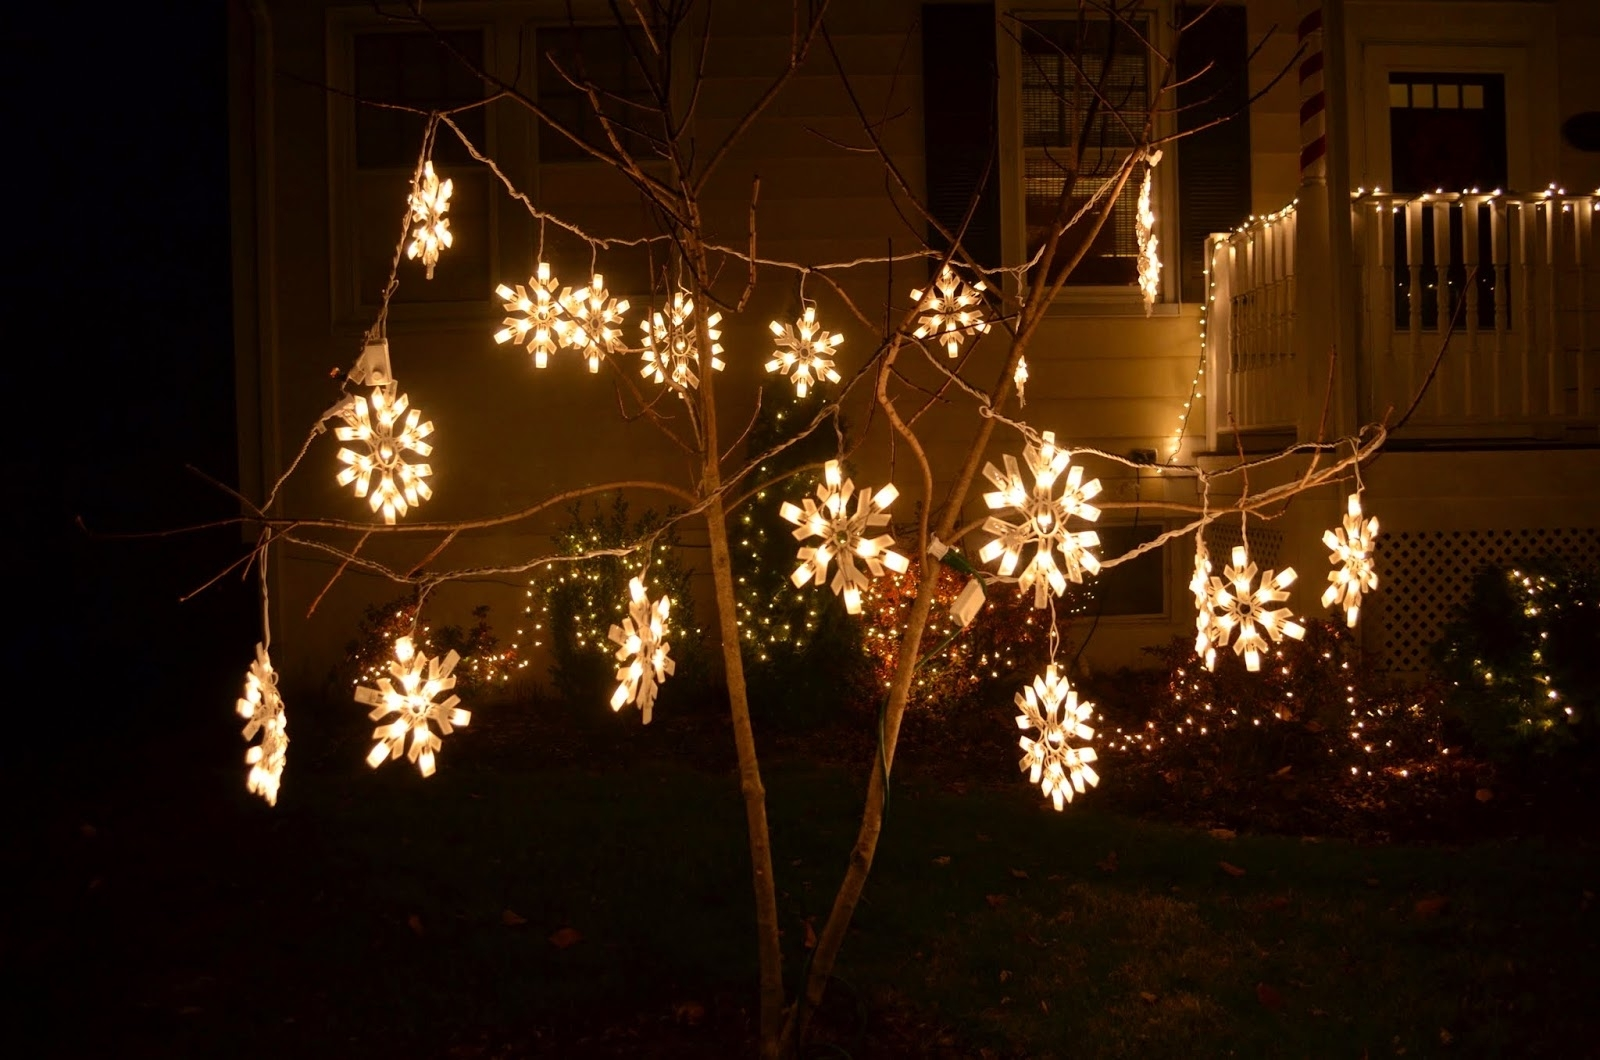 Diy : Home Decor Lighting Outdoor Lights And How Use String Trees Inside Trendy Outdoor Low Voltage Hanging Tree Lights (View 4 of 20)